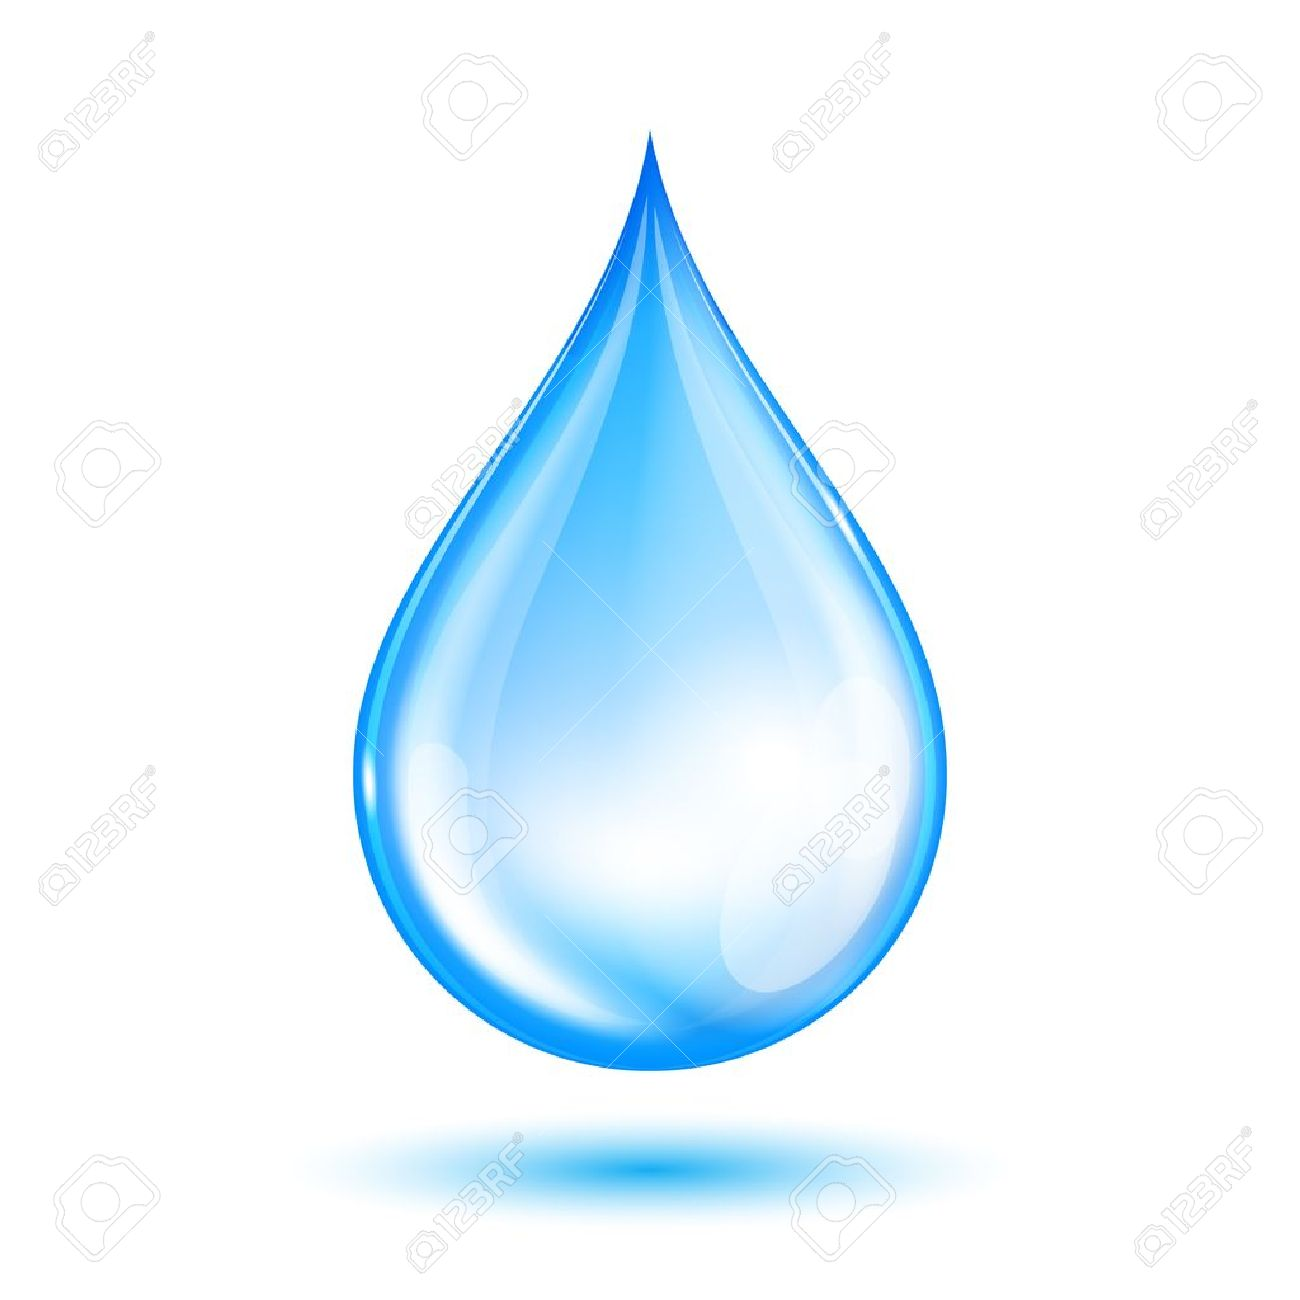 31 619 raindrop stock illustrations cliparts and royalty free